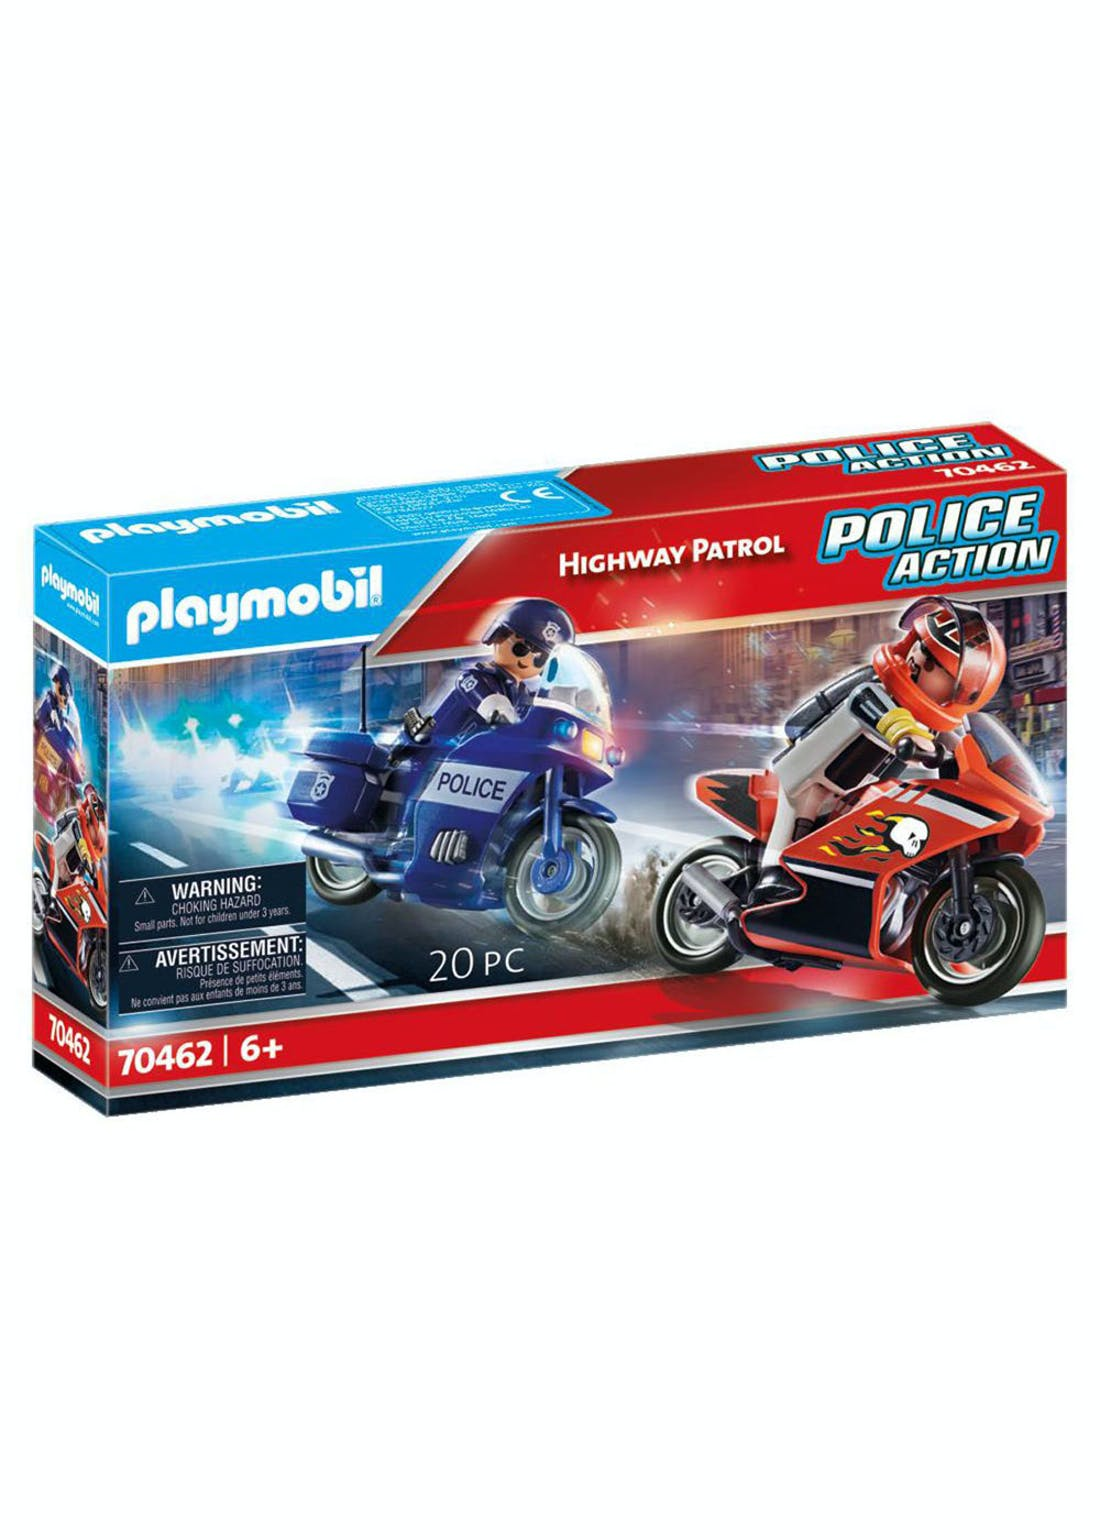 Playmobil 70462 Police Action Highway Patrol (25cm x 14cm x 4.5cm)